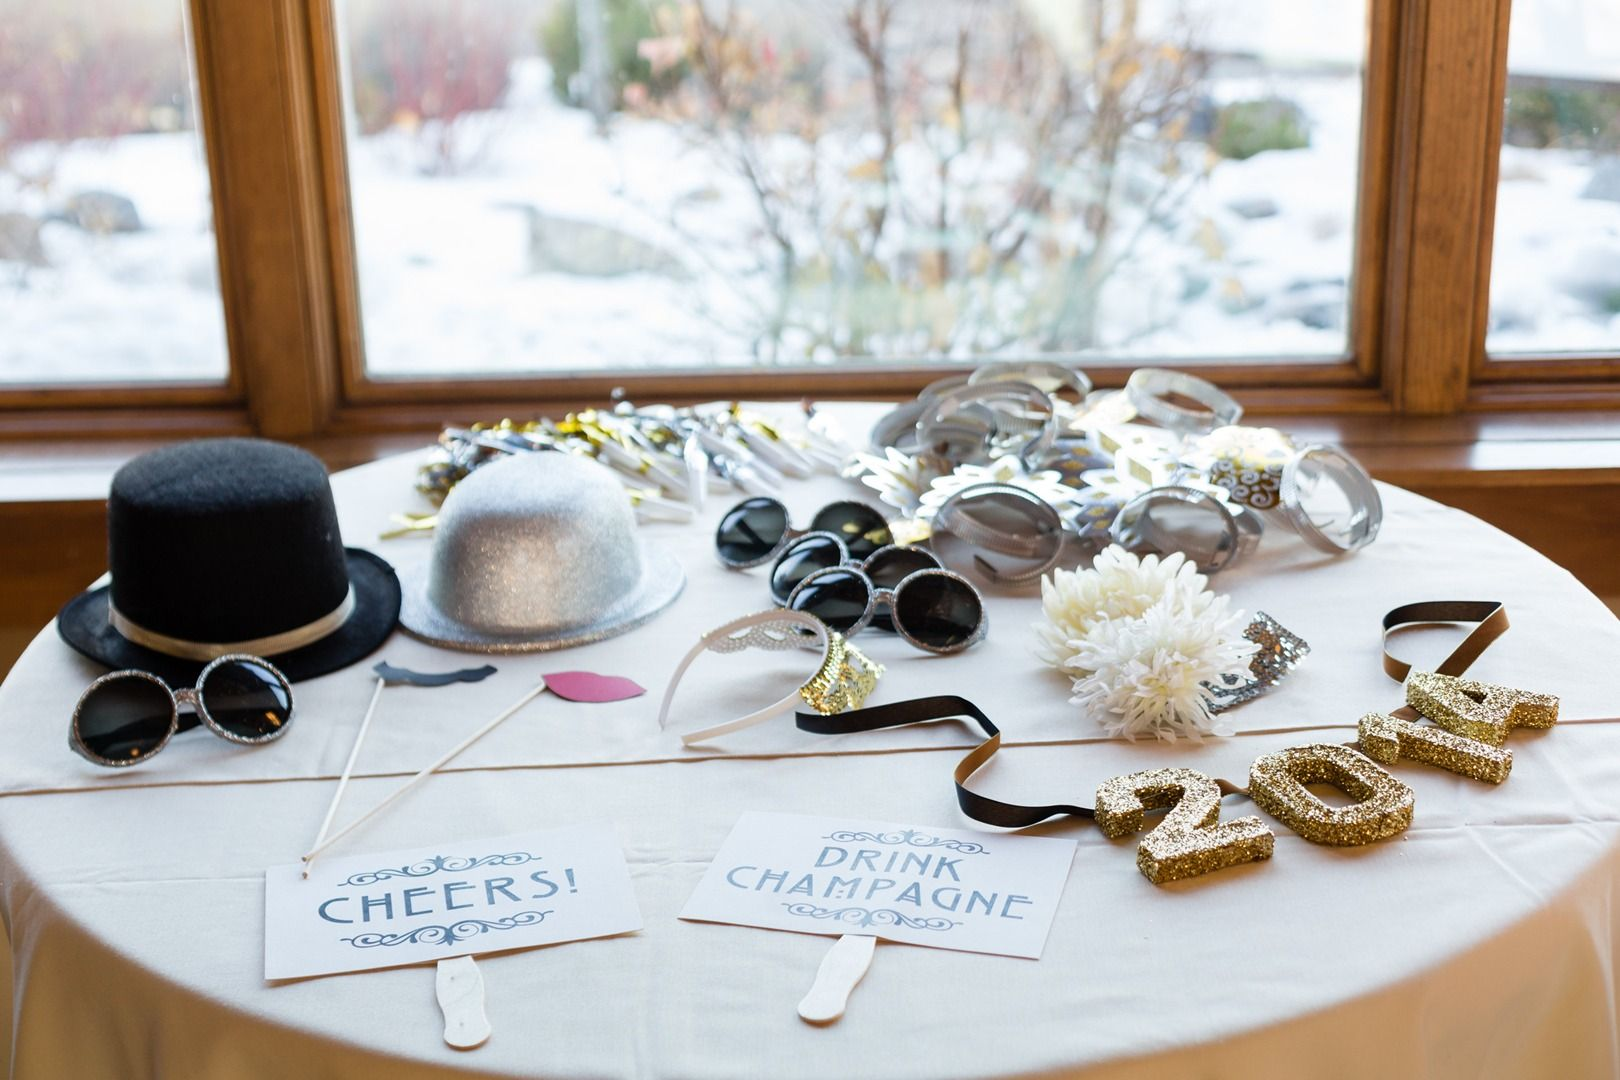 Reno, Nevada Wedding. Wedding Planner Lake Tahoe. Wedding organization Northern Nevada. NV. Set Up, Take Down, Wedding. The After Party. The Grove Reno. New Years Eve Wedding. Nude sparkles, gold sparkles, sequins, NYE, DIY Wedding, Modern wedding inspiration, vintage wedding inspiration, mercury glass. classy photo booth, diy photo booth props